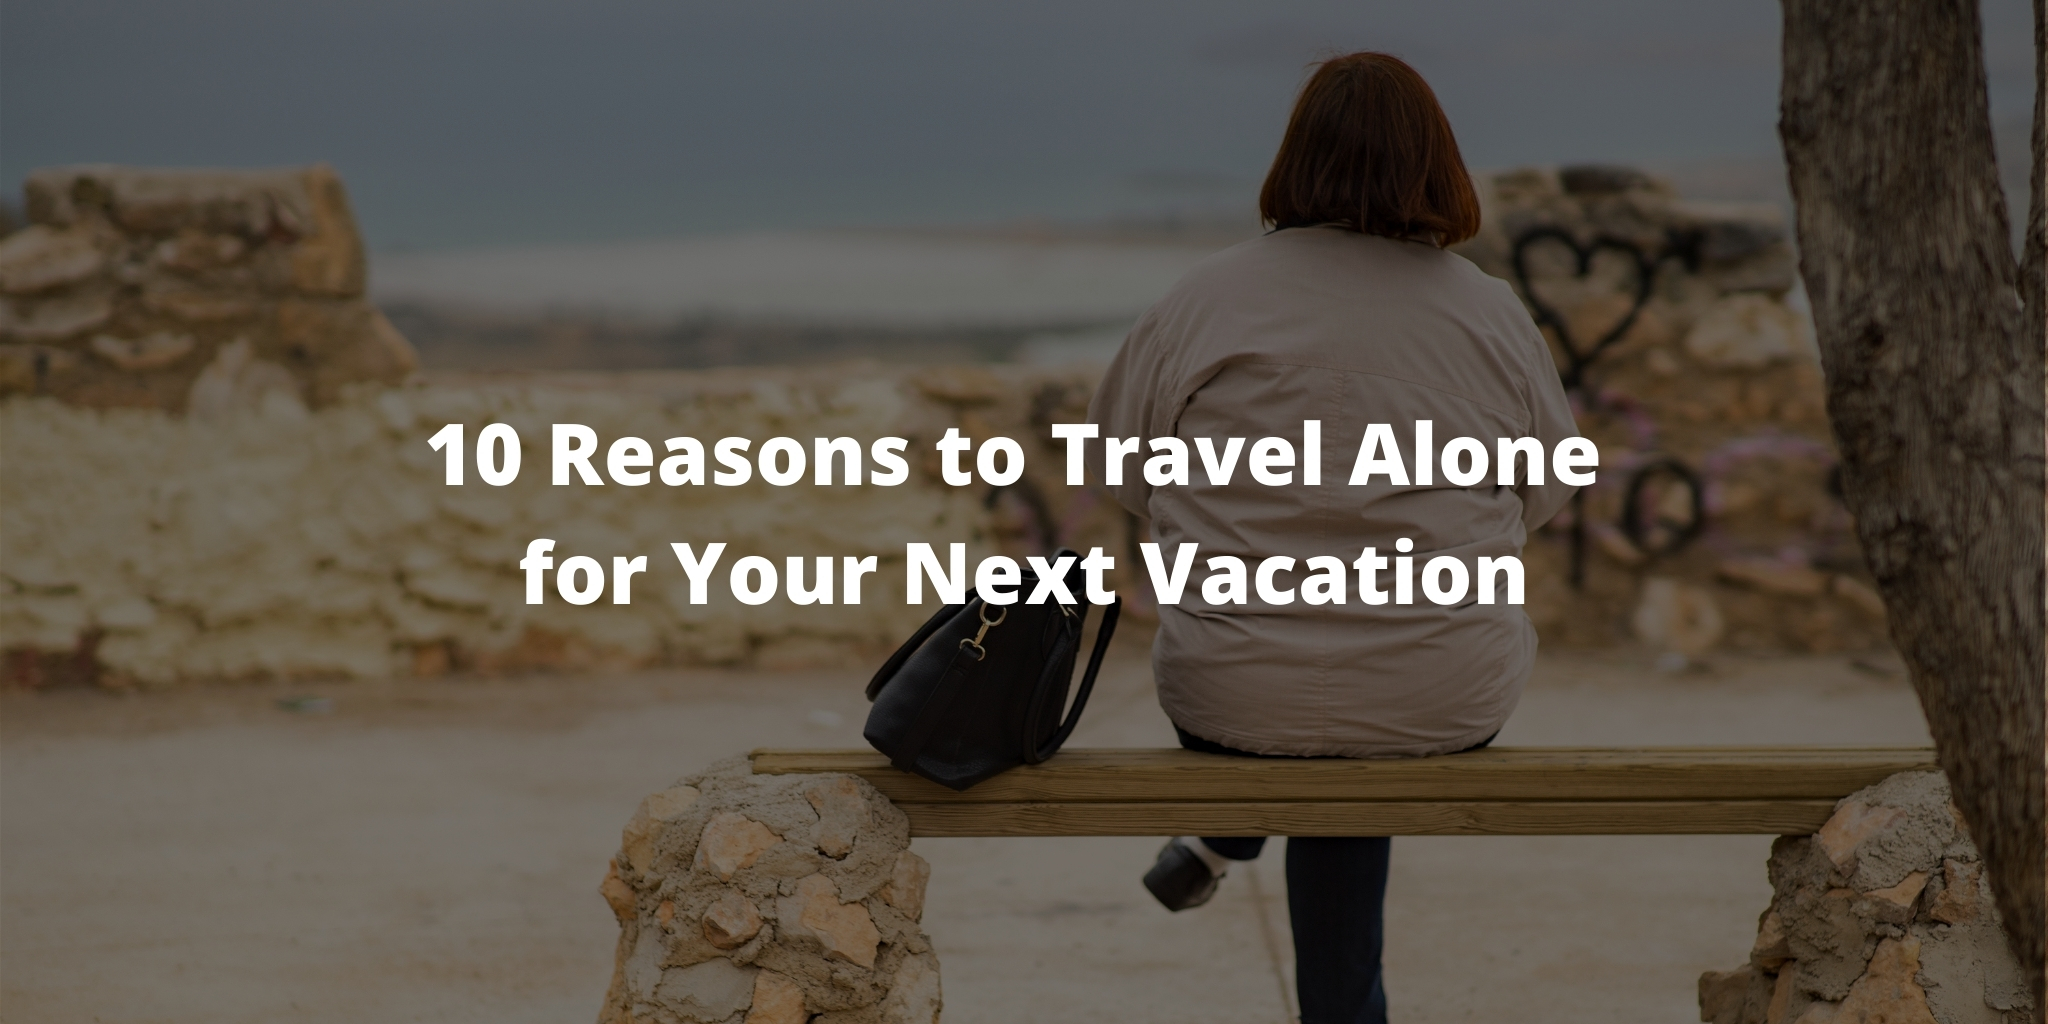 10 Reasons to Travel Alone for Your Next Vacation